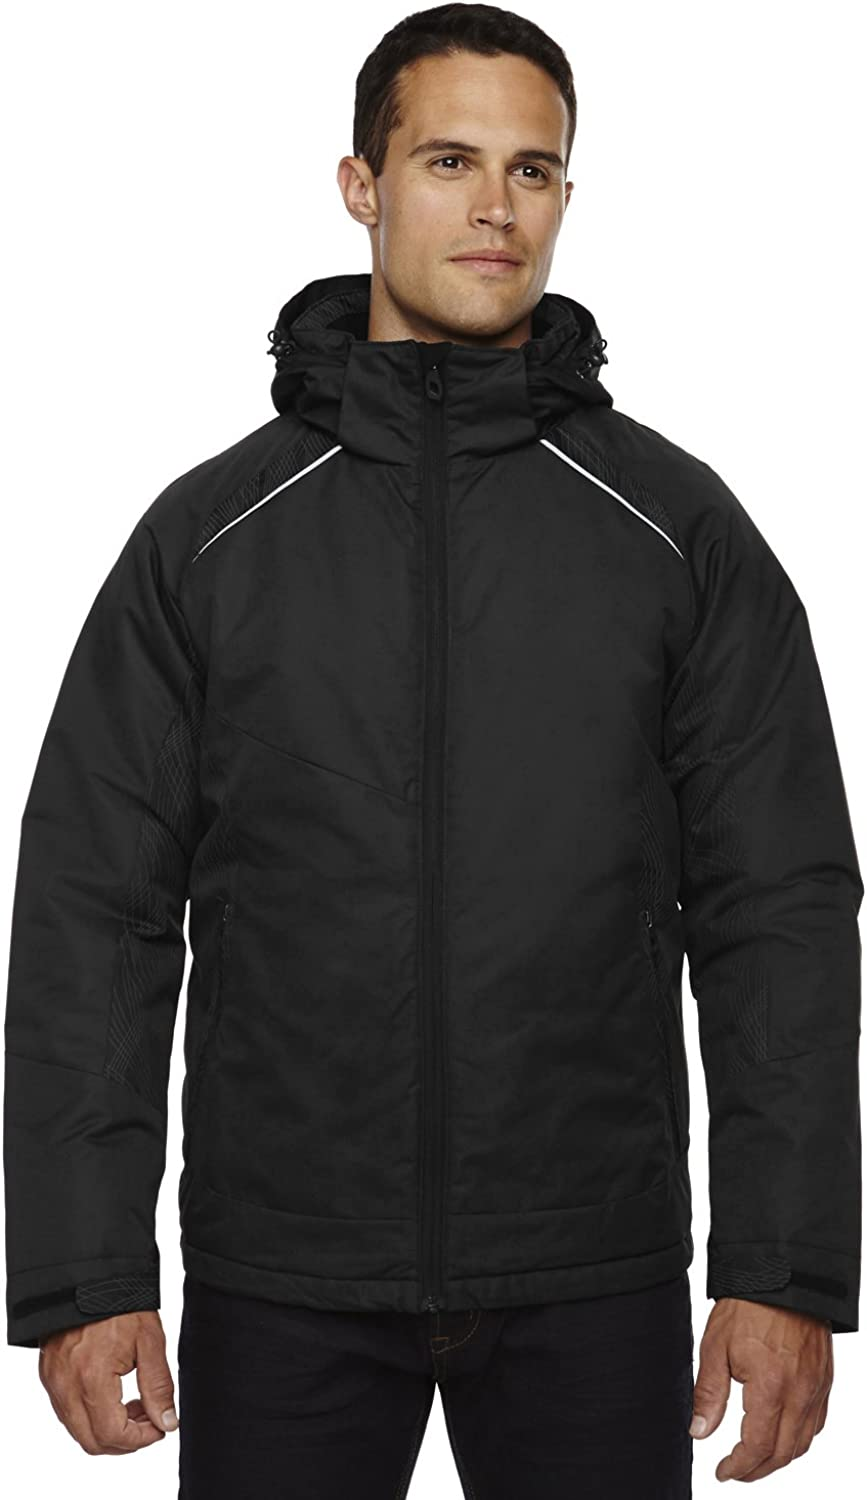 North End Mens Linear Insulated Jackets With Print (88197) -BLACK 703 -3XL